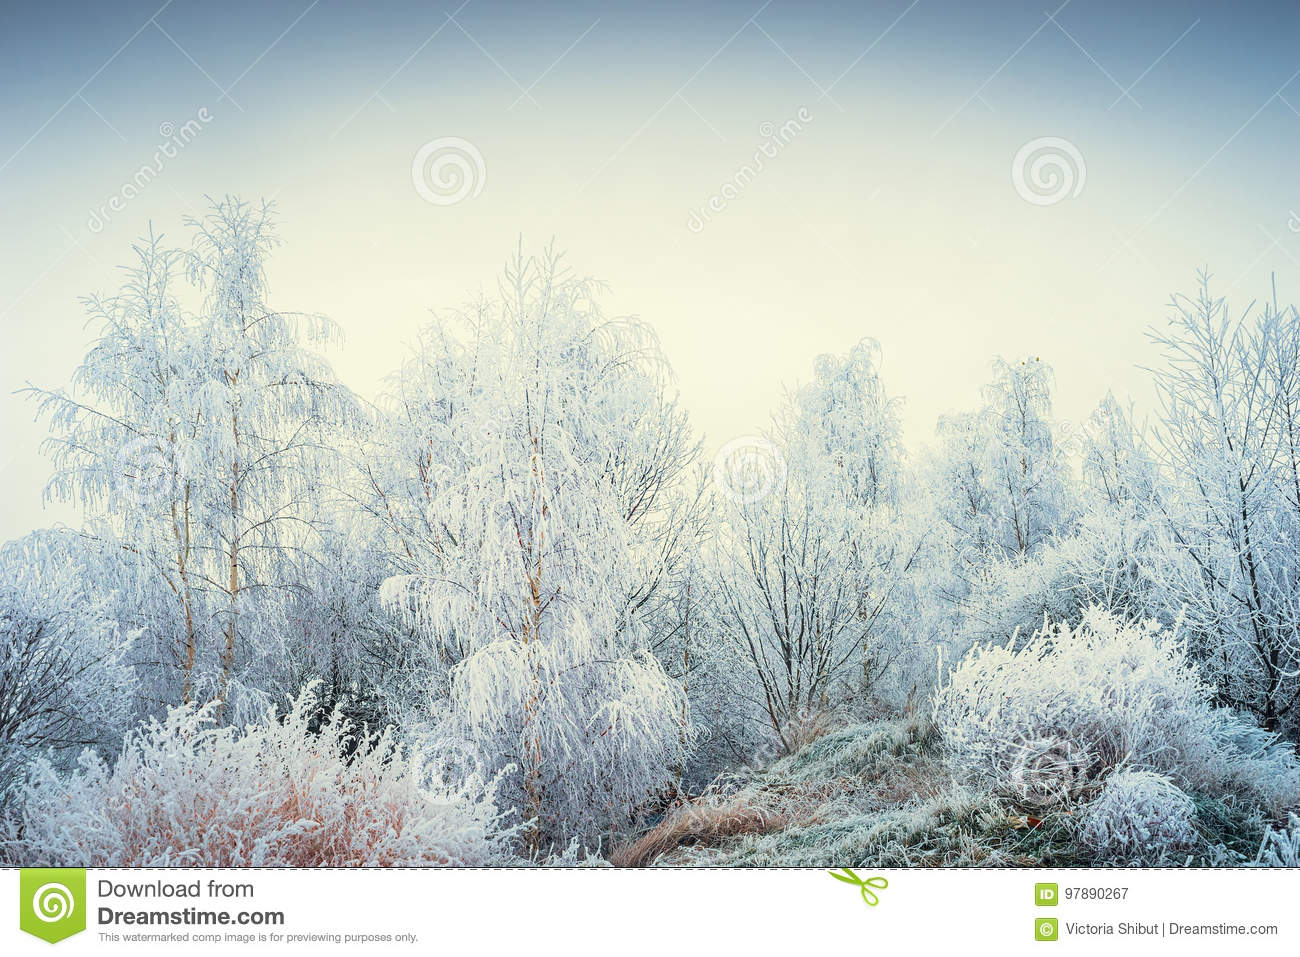 Wonderful winter landscape with snowy trees and grasses at sky background